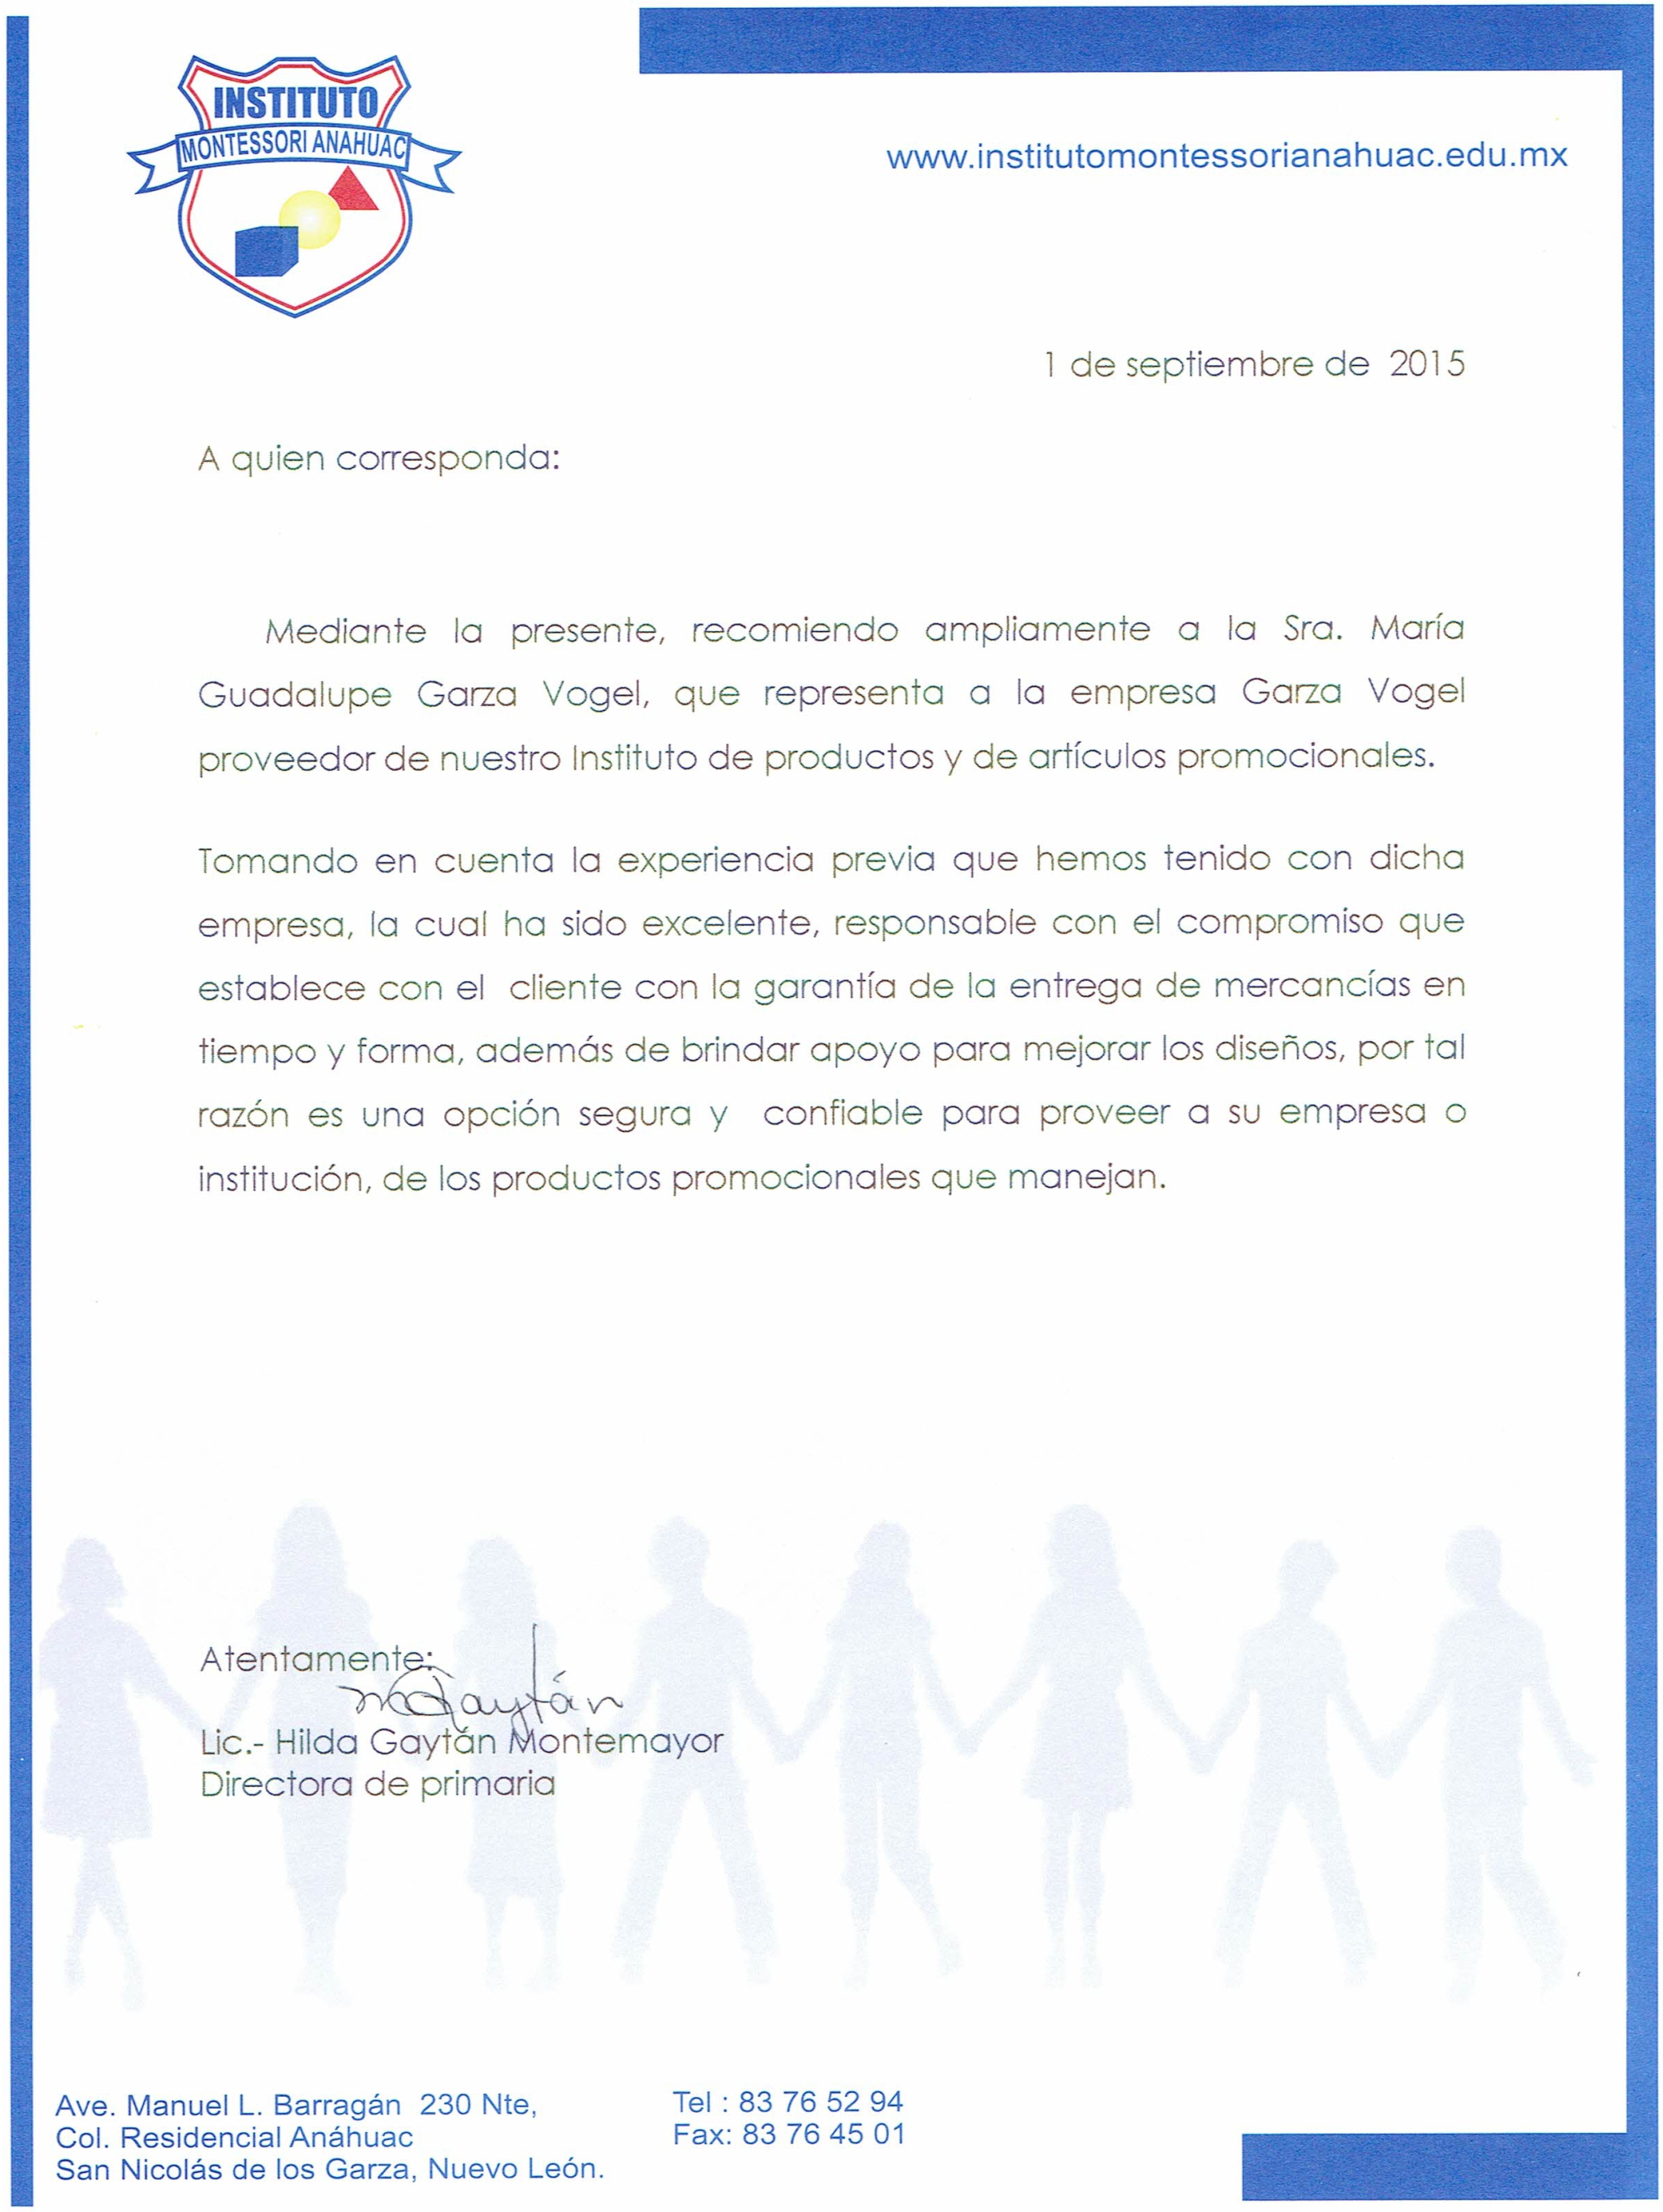 Instituto Montessrori Anahuac